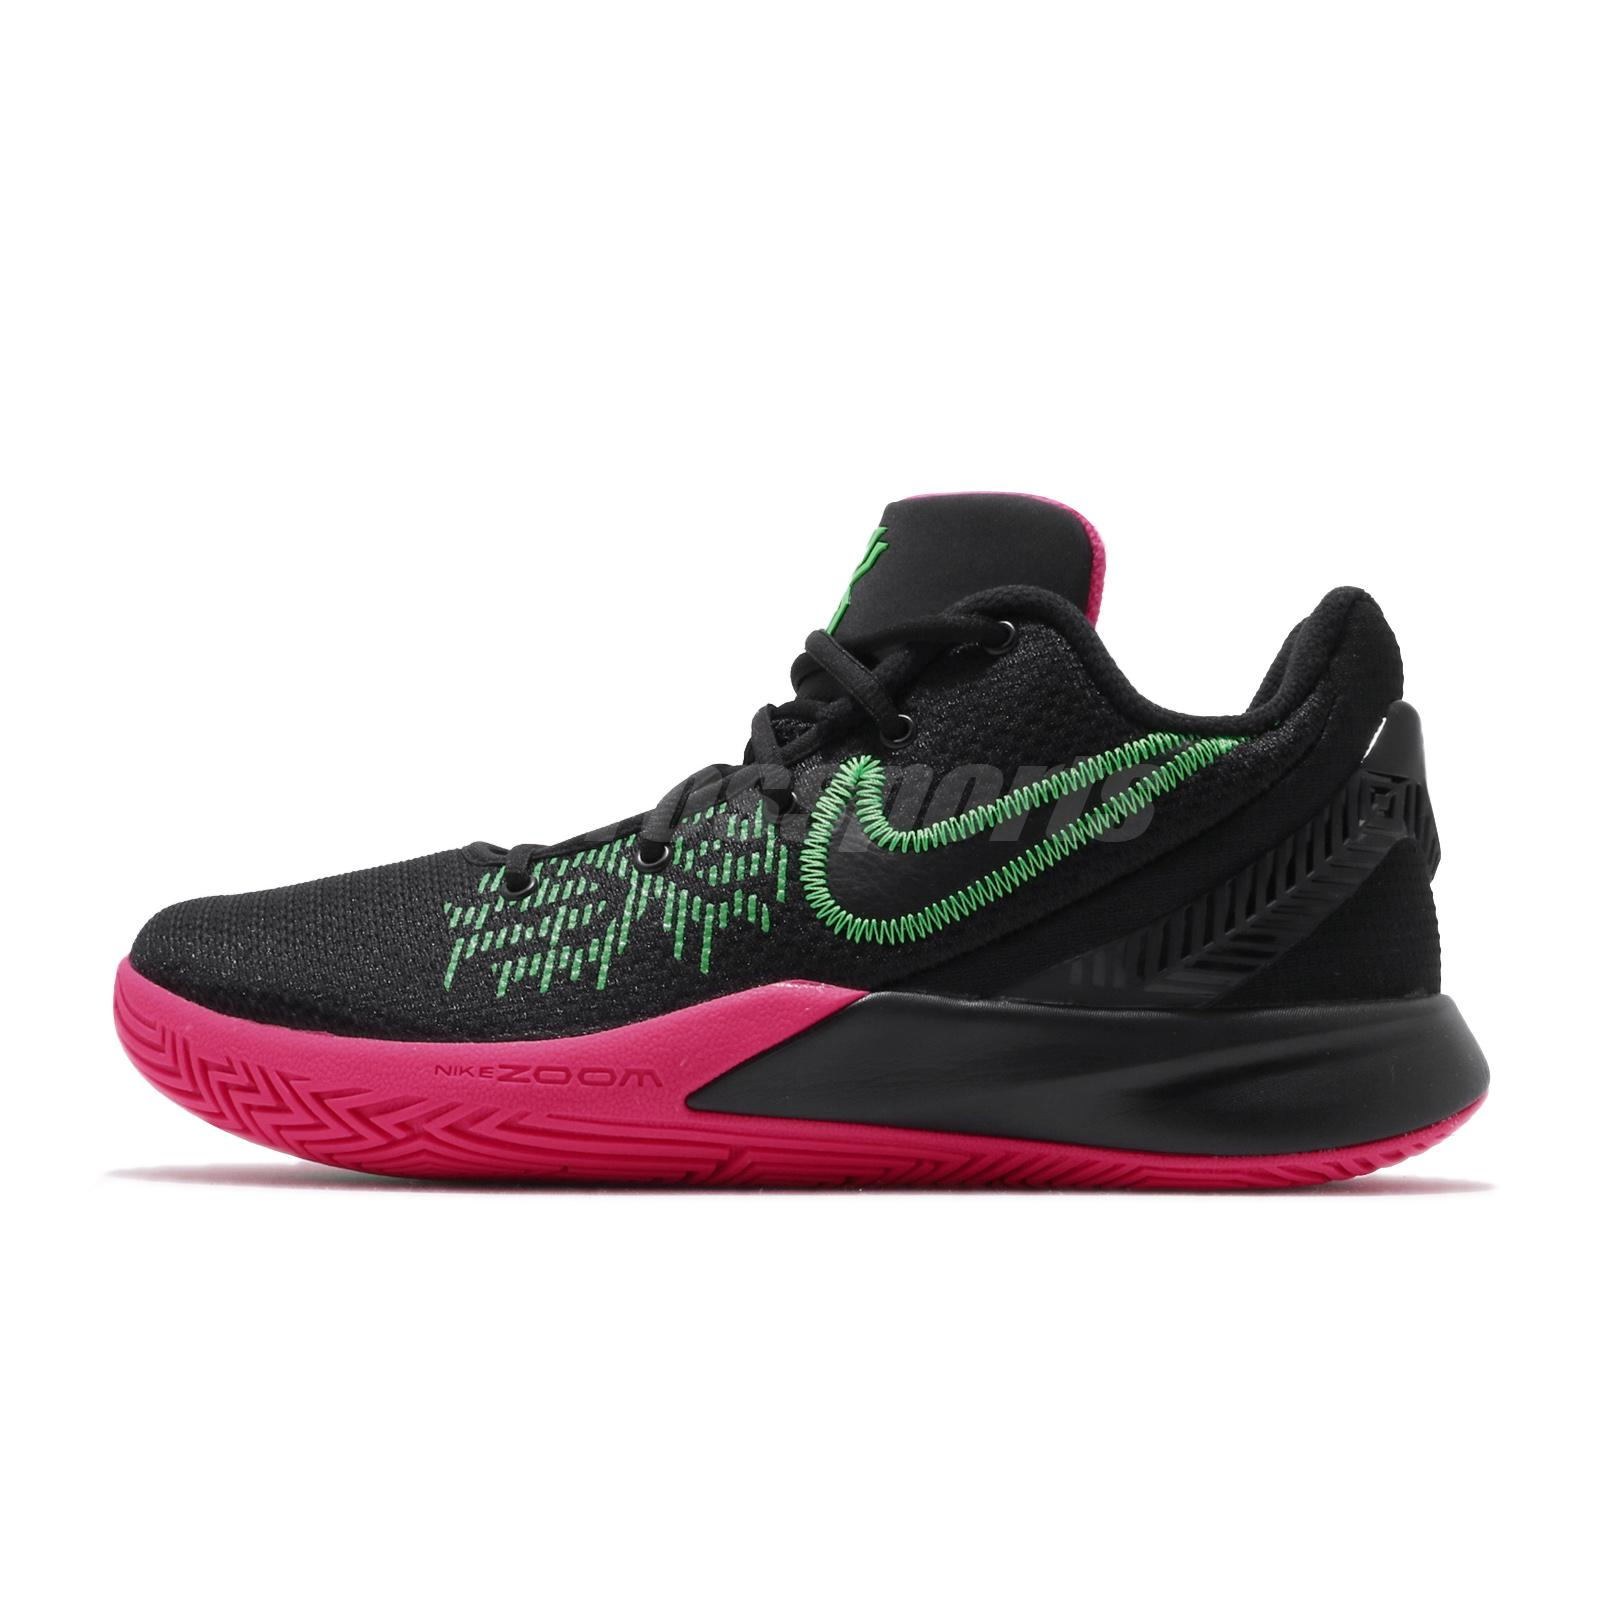 low priced 27936 0a69e Details about Nike Kyrie Flytrap II EP 2 Irving Black Pink Green Men Shoes  Sneakers AO4438-005